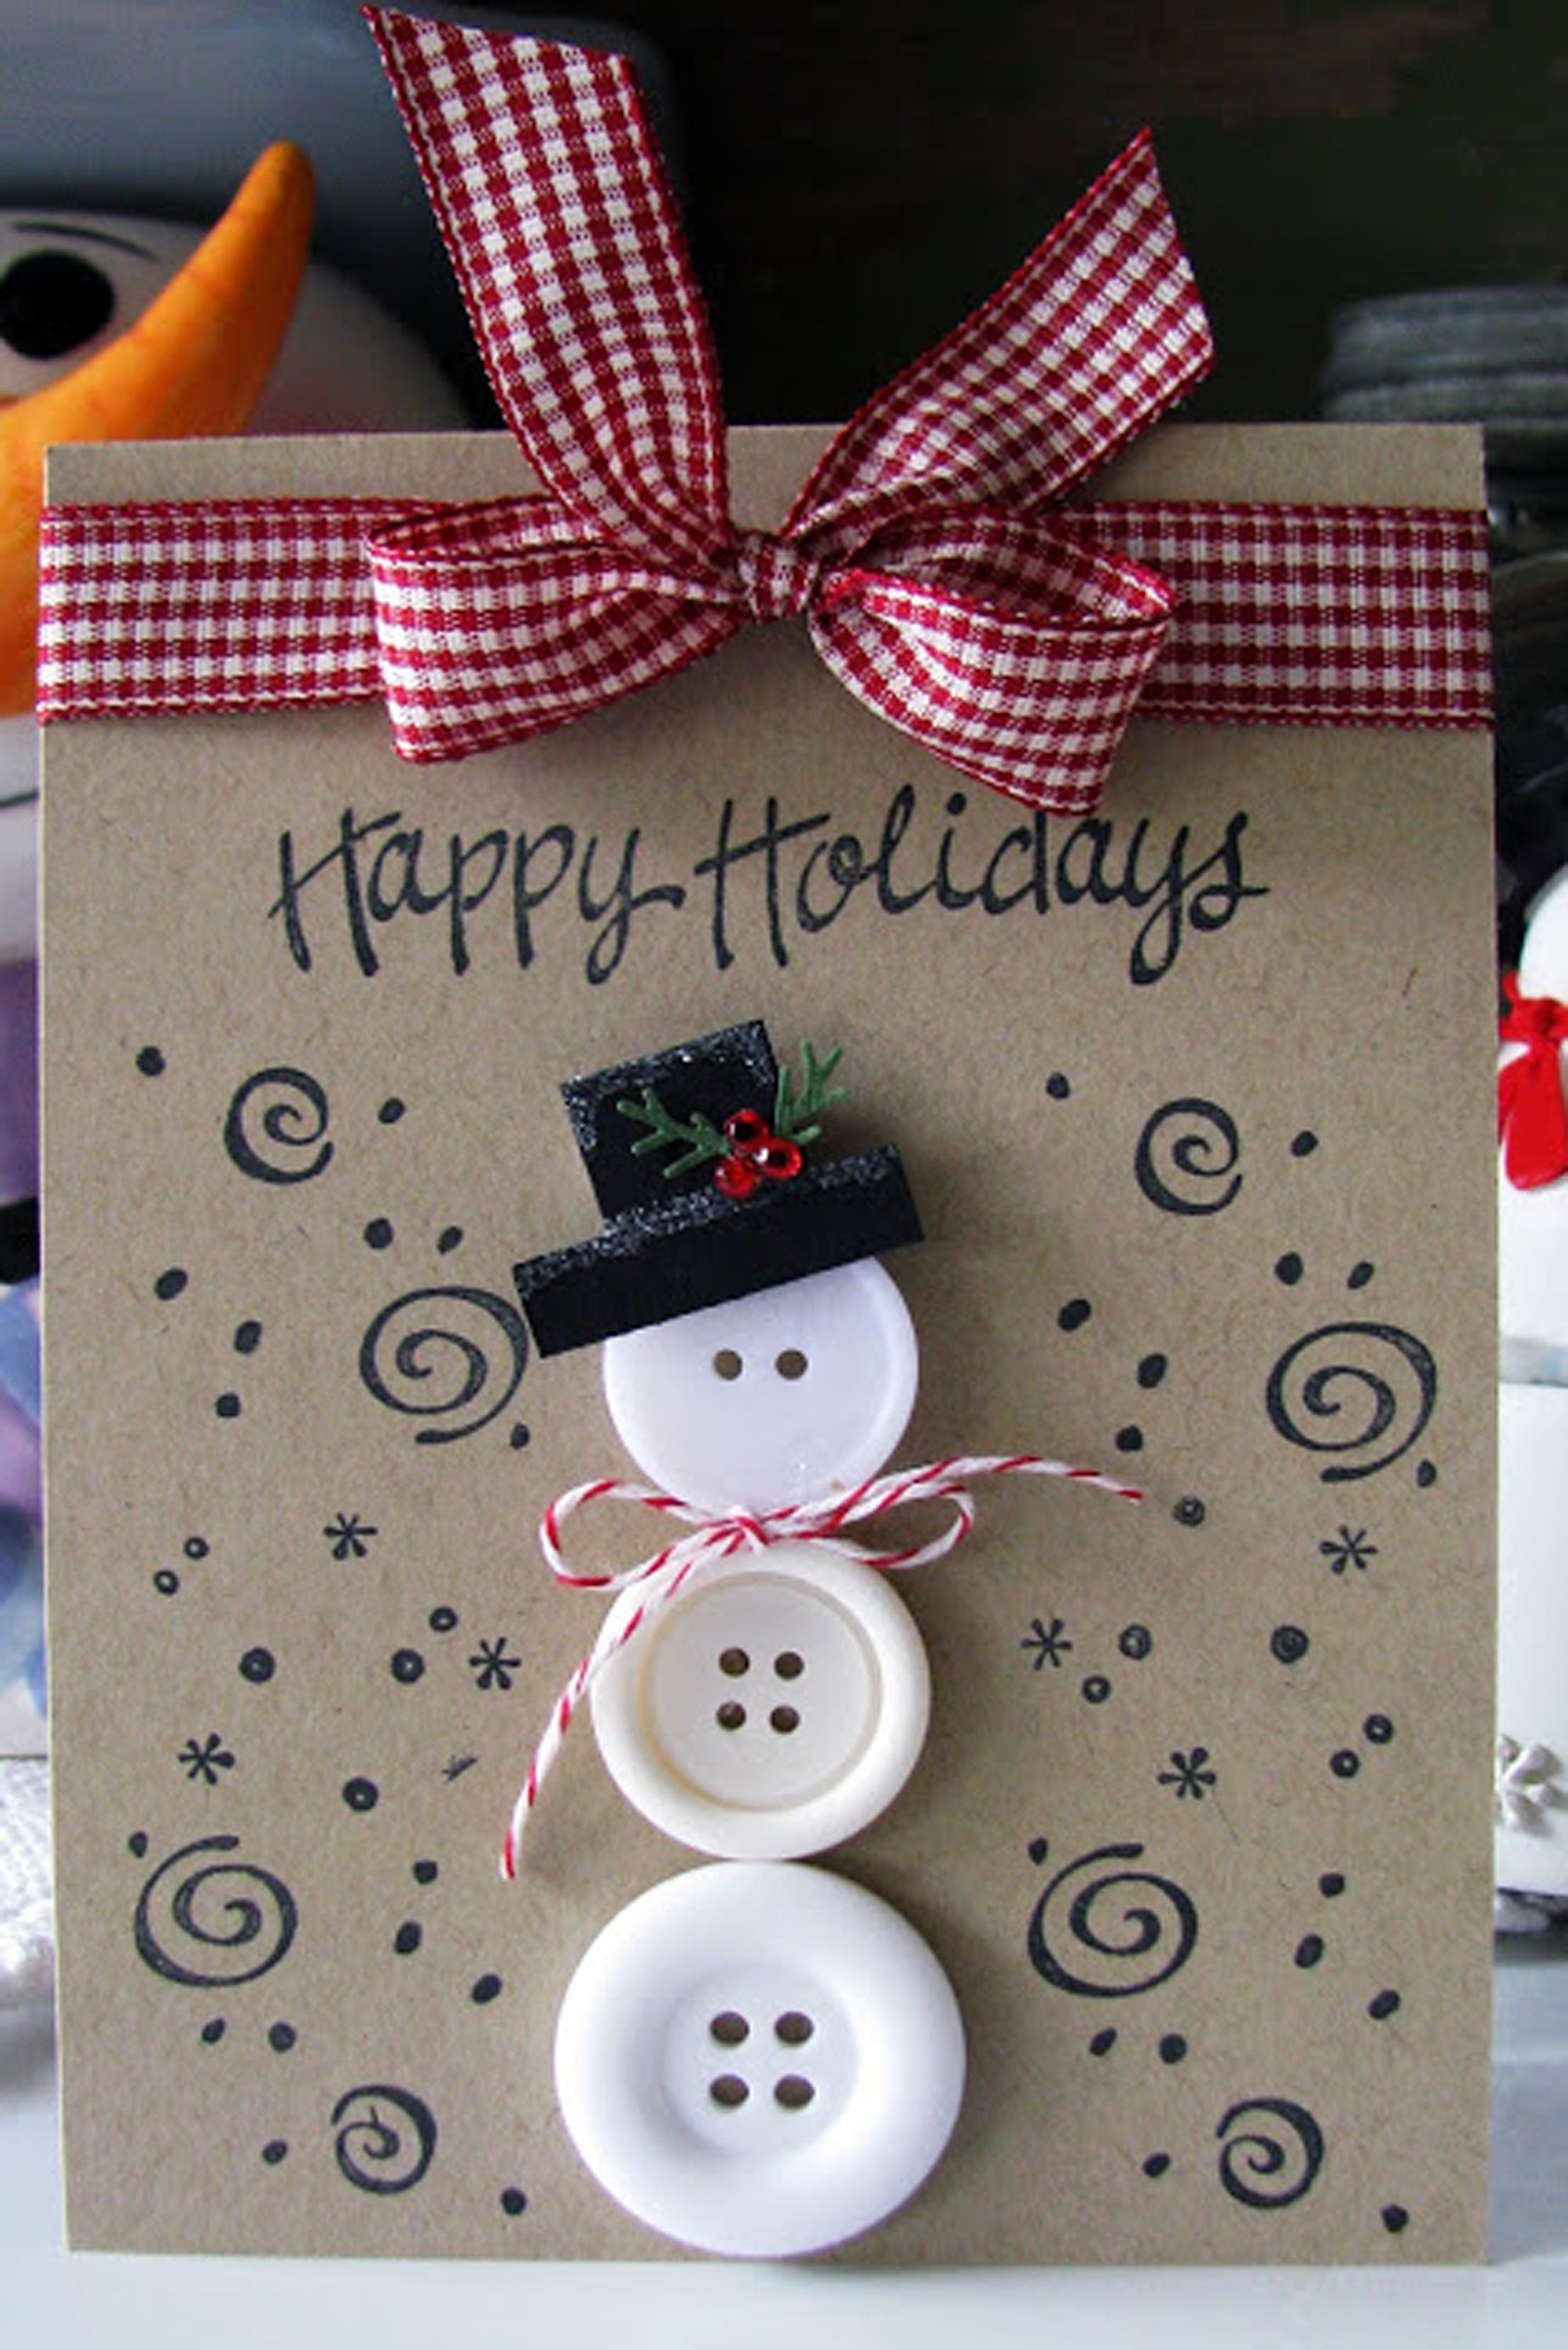 39 DIY Christmas Cards , Homemade Christmas Card Ideas 2019